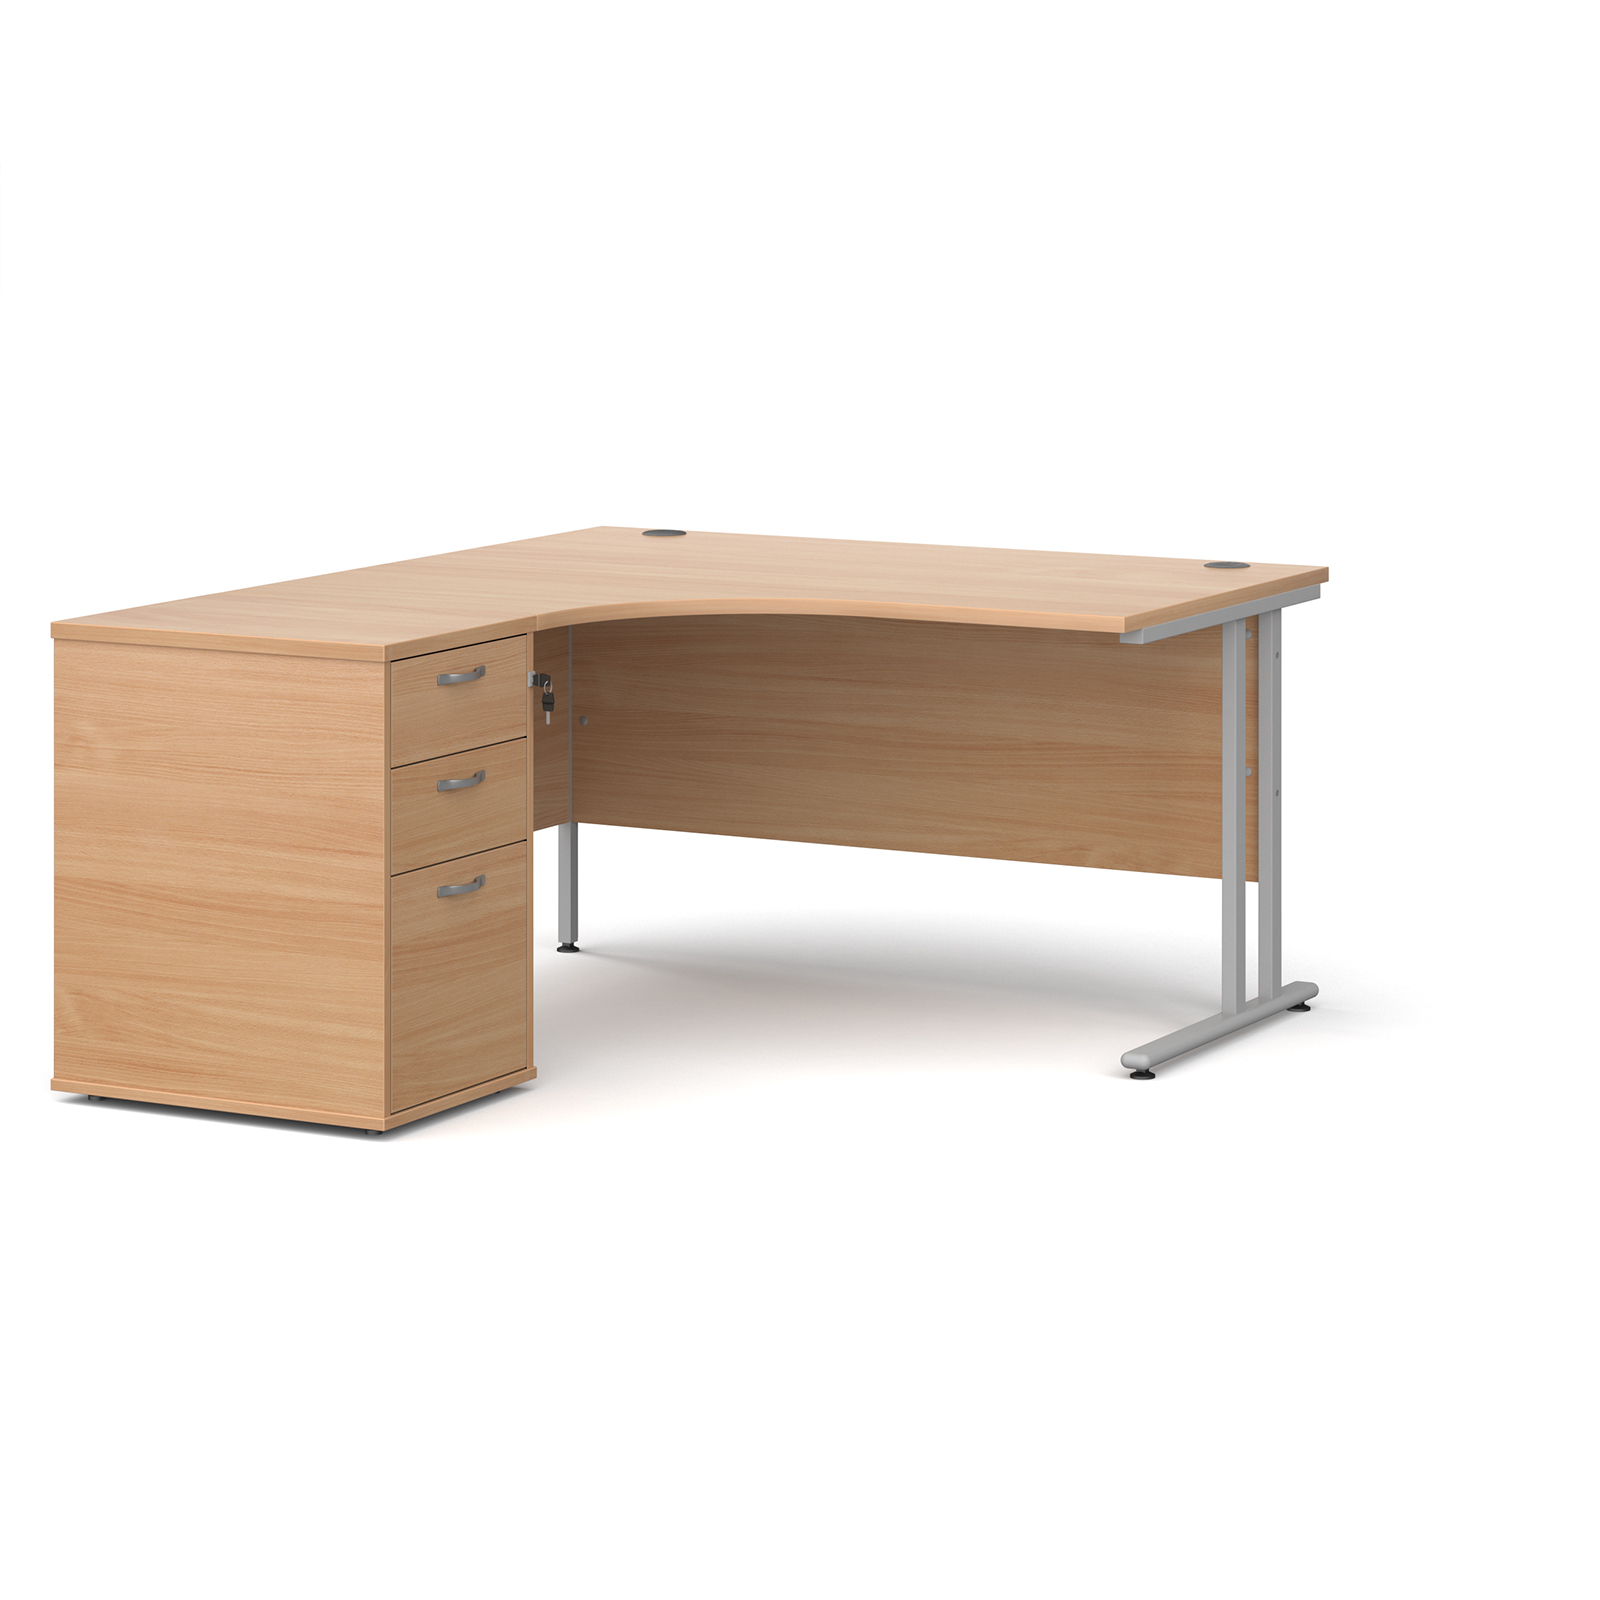 Left Handed Maestro 25 left hand ergonomic desk 1400mm with silver cantilever frame and desk high pedestal - beech